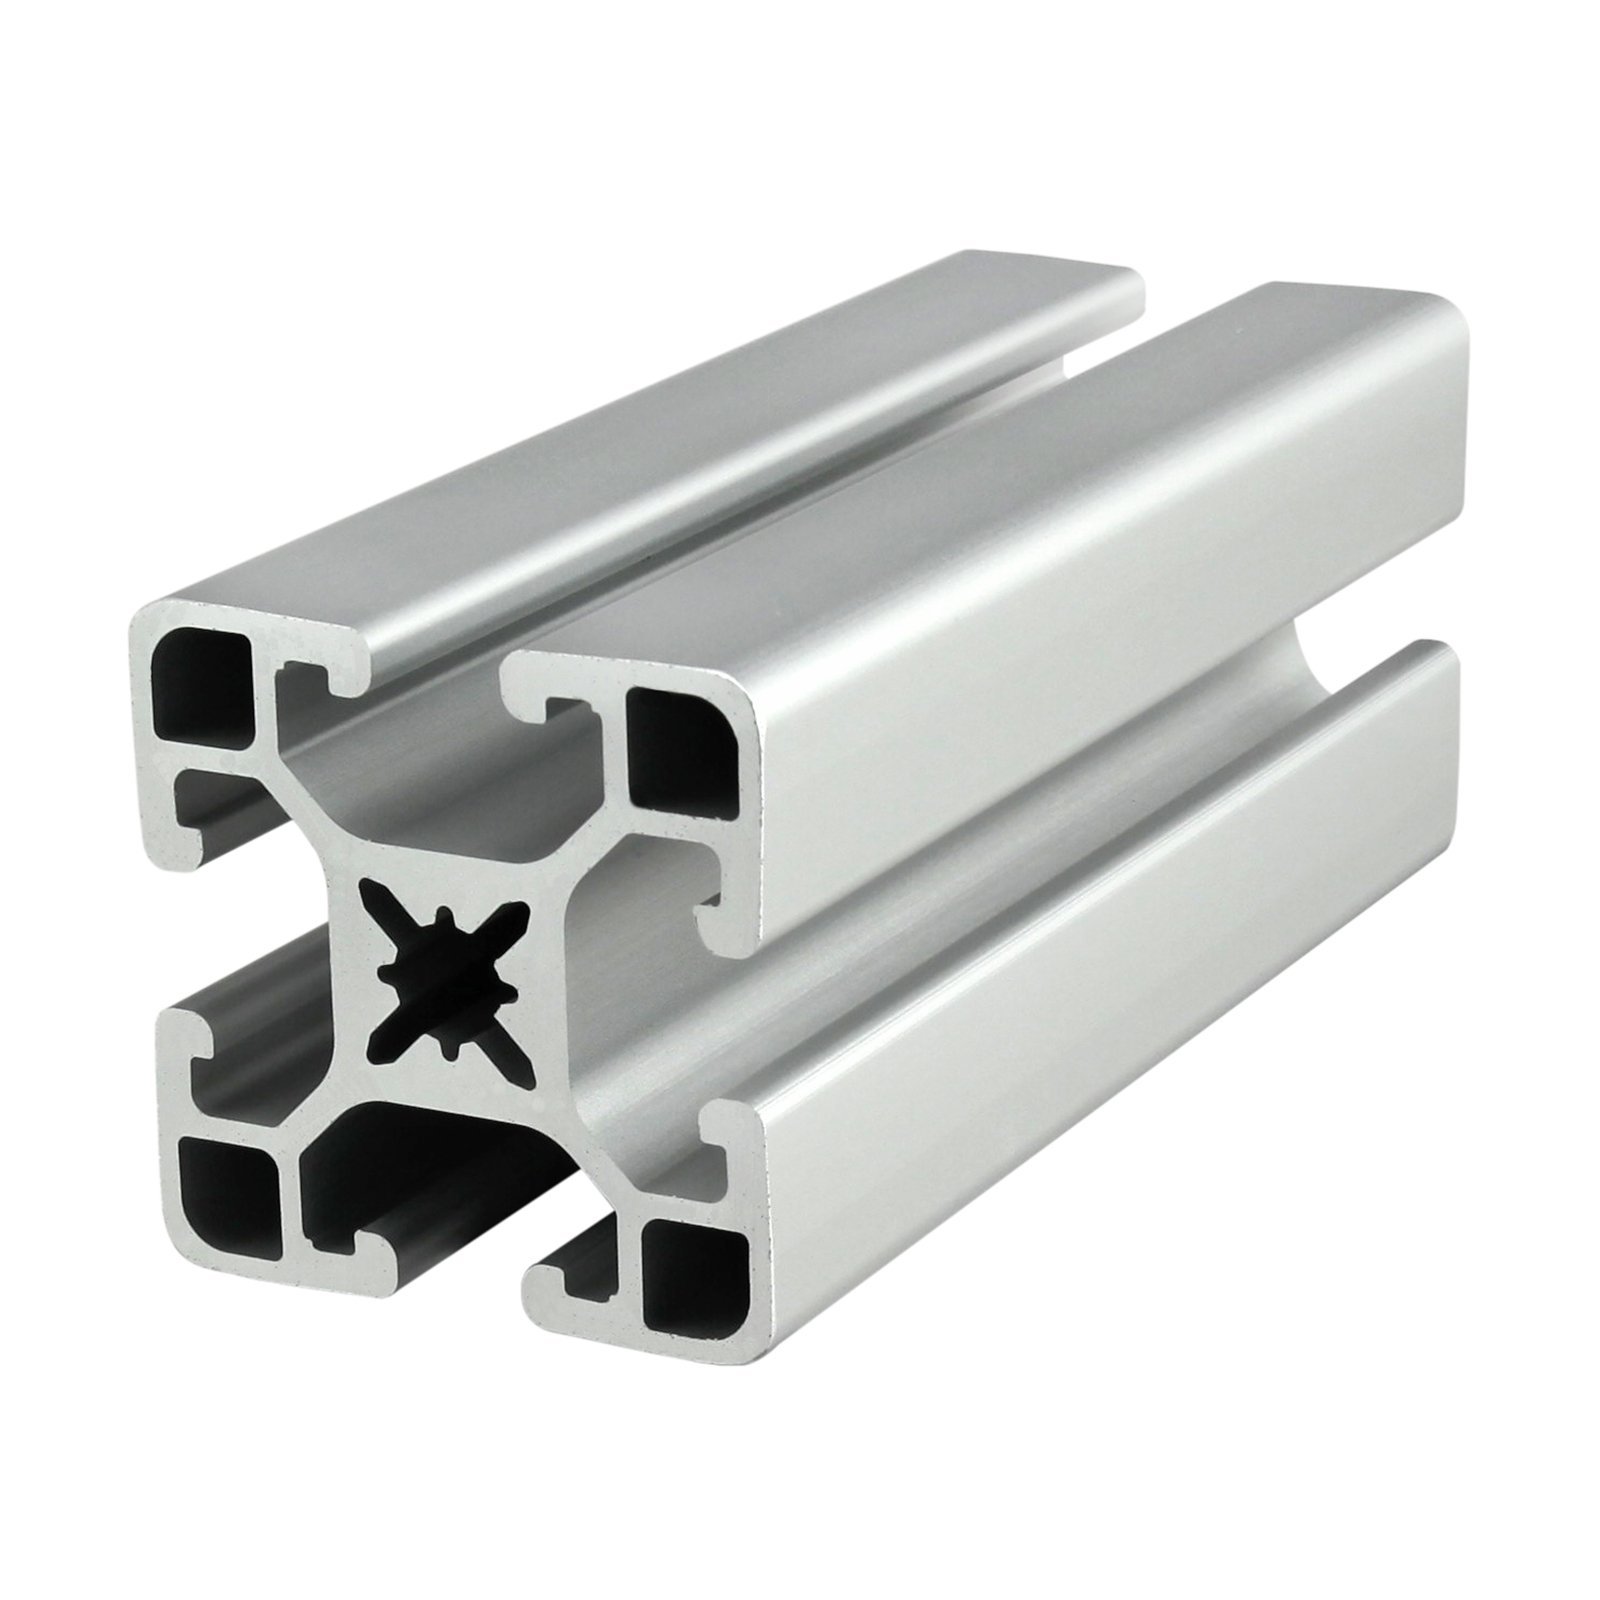 80/20 Inc., 40-4040-UL, 40 Series, 40mm x 40mm Ultra Lite T-Slotted Extrusion x 1220mm